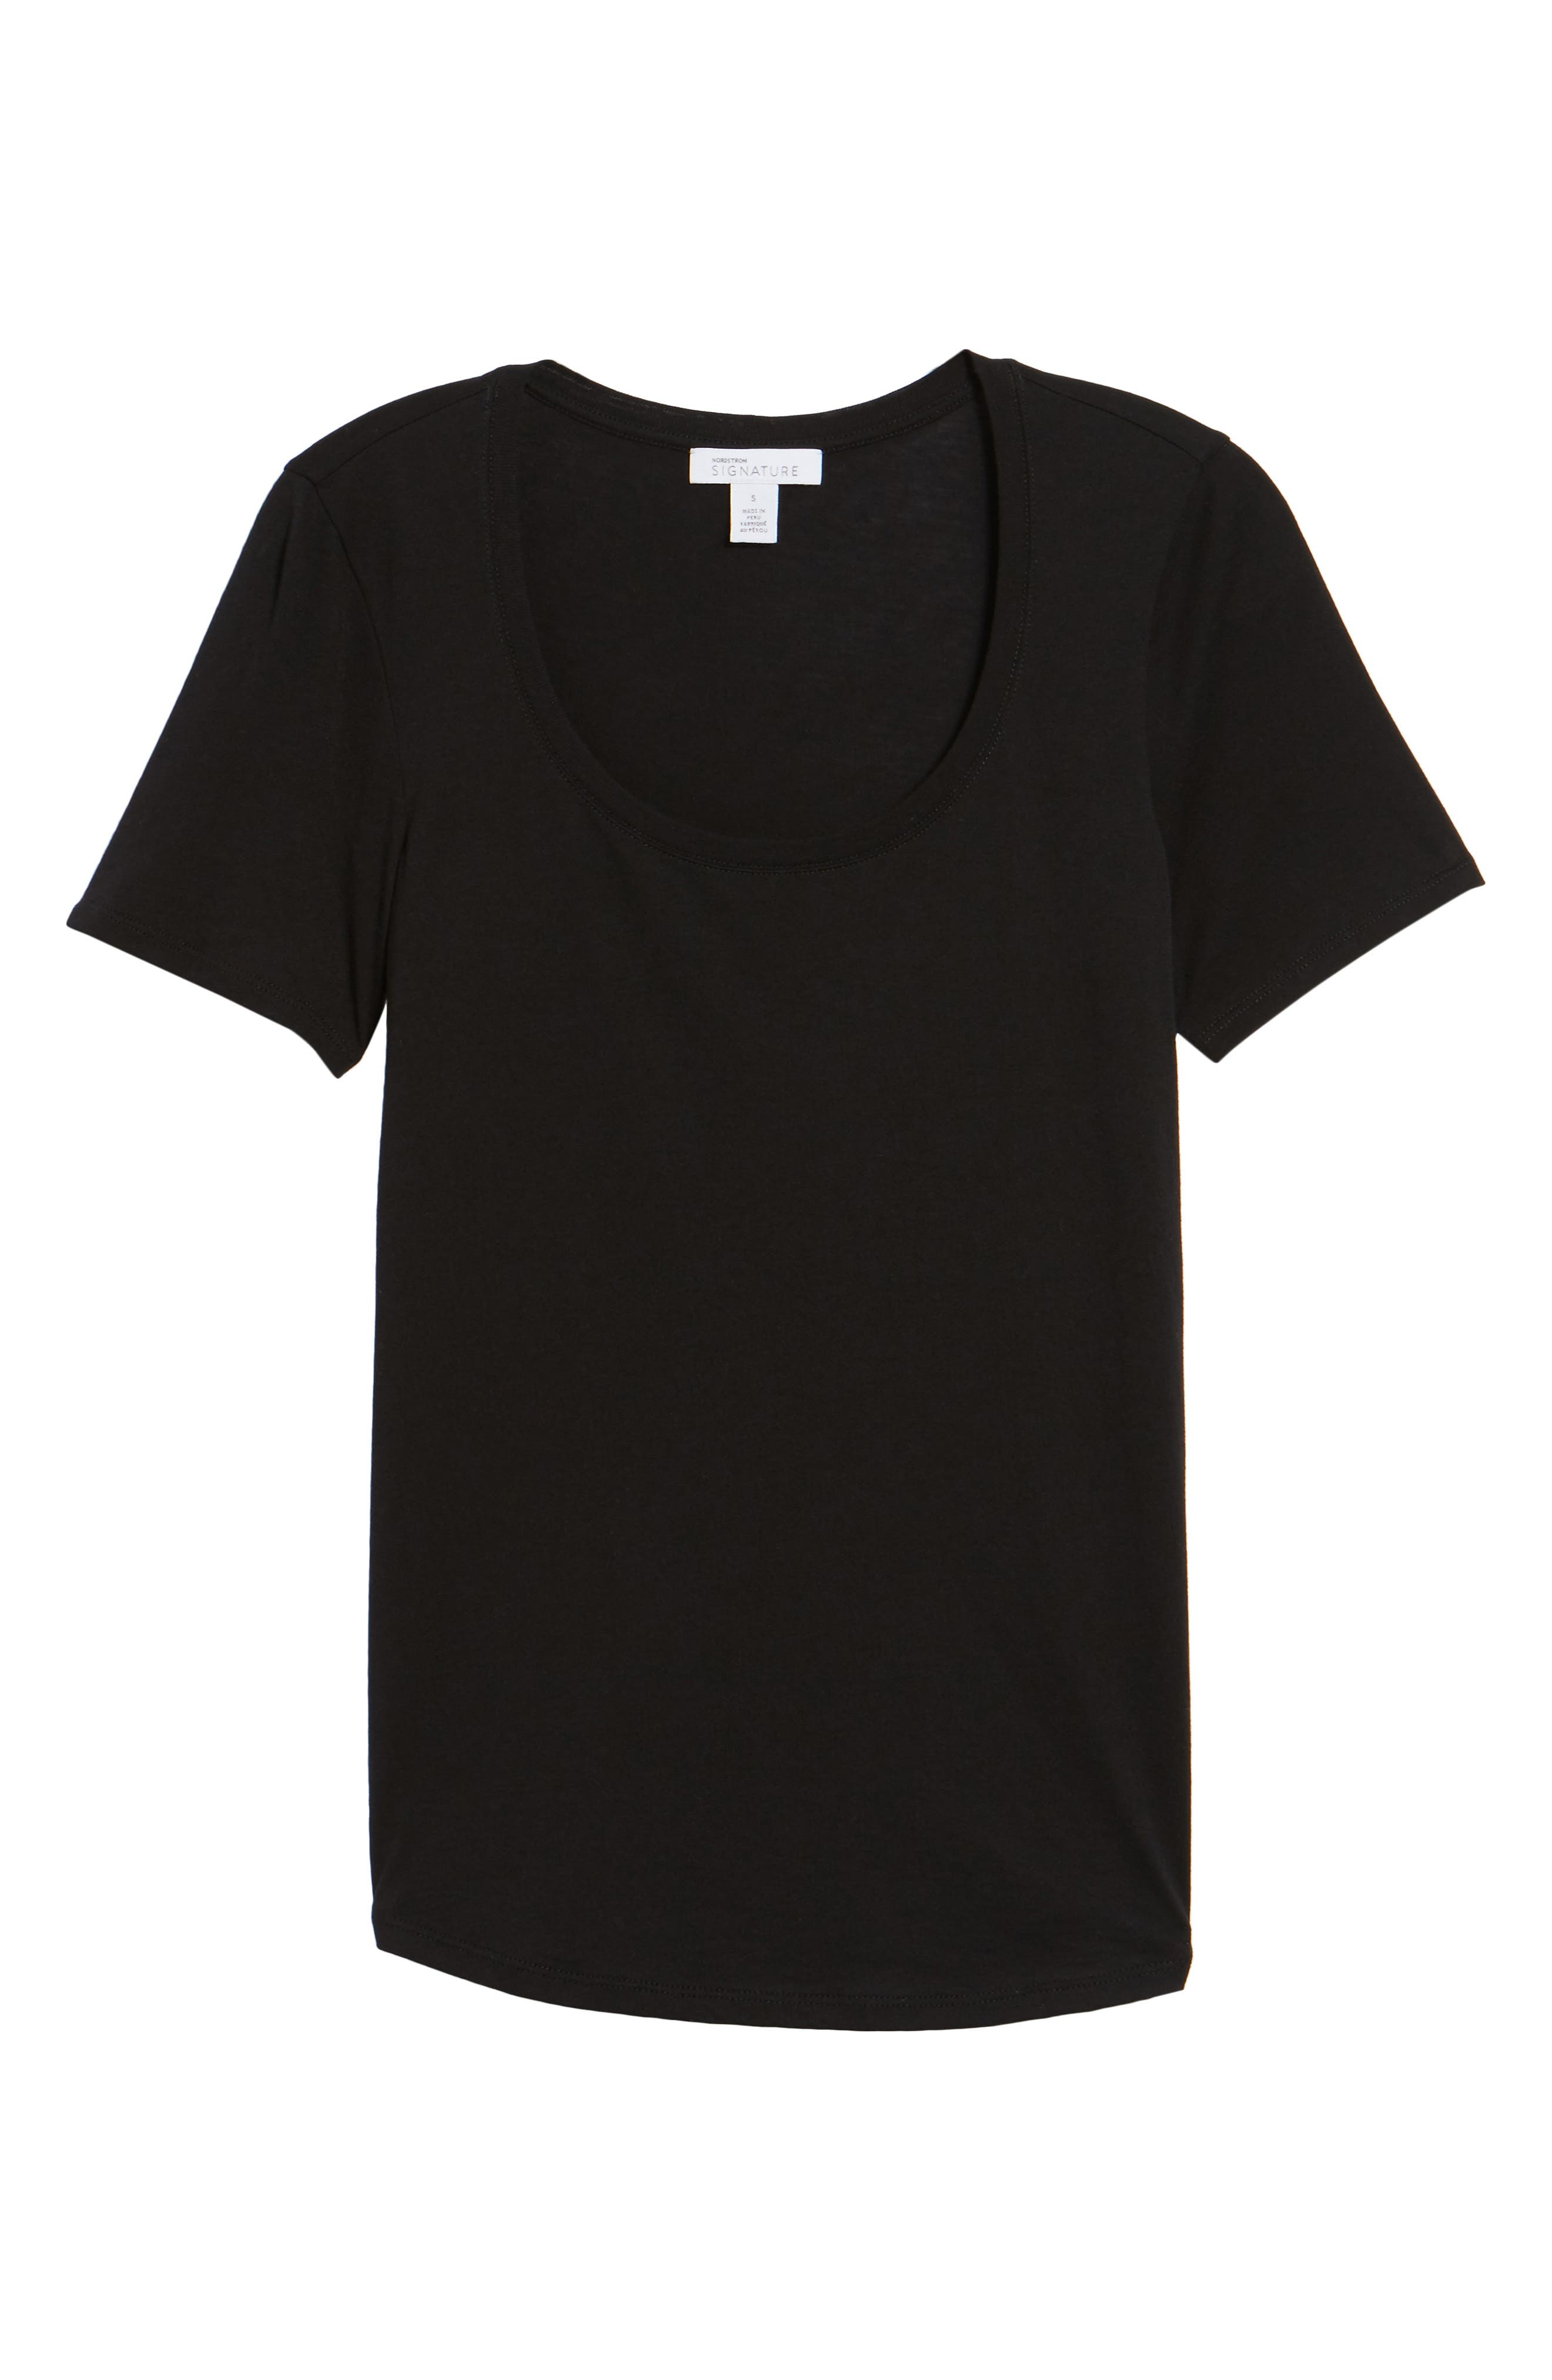 Scoop Neck Tee,                             Alternate thumbnail 6, color,                             001